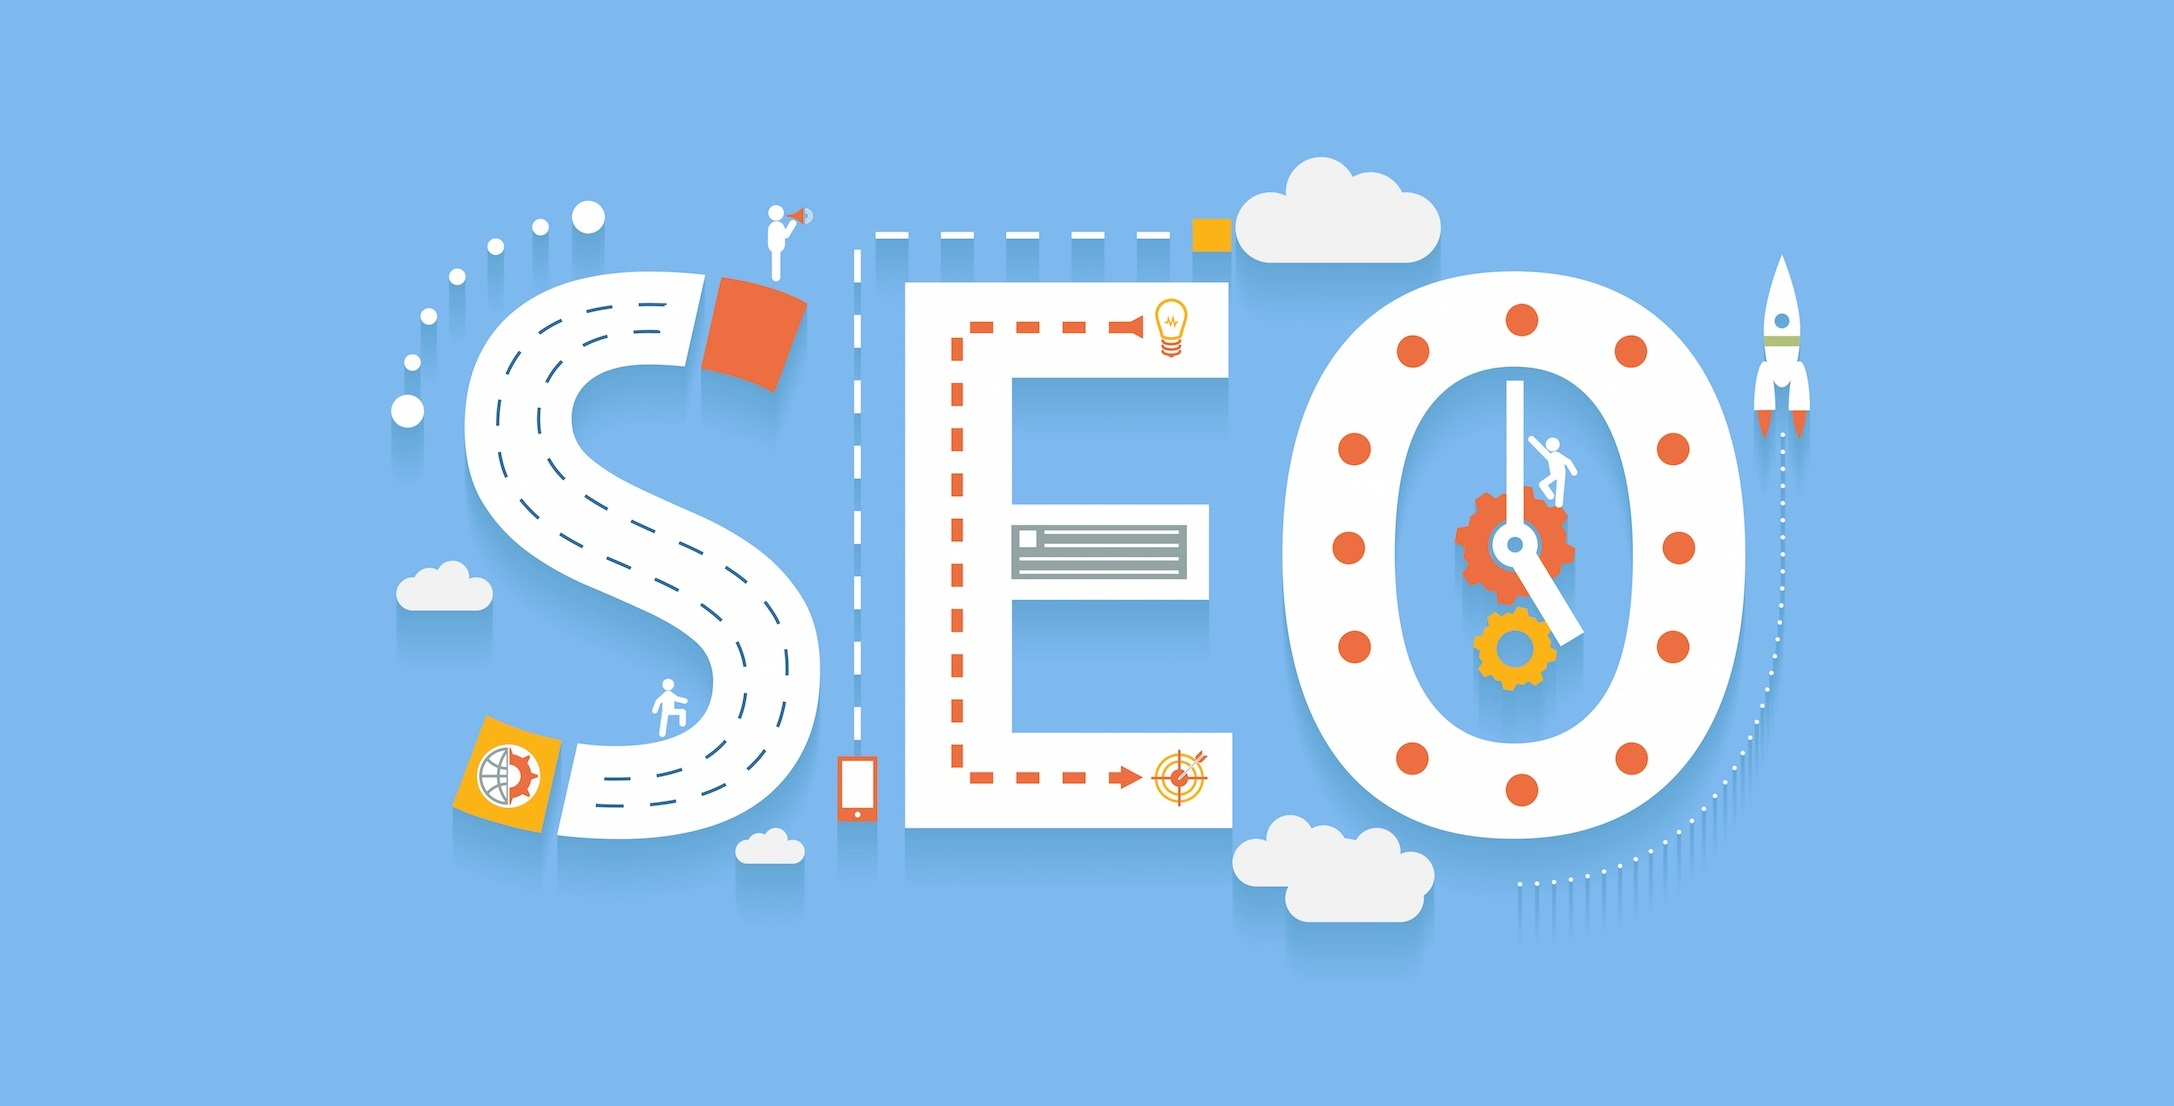 SEO tips for better ranking In Google